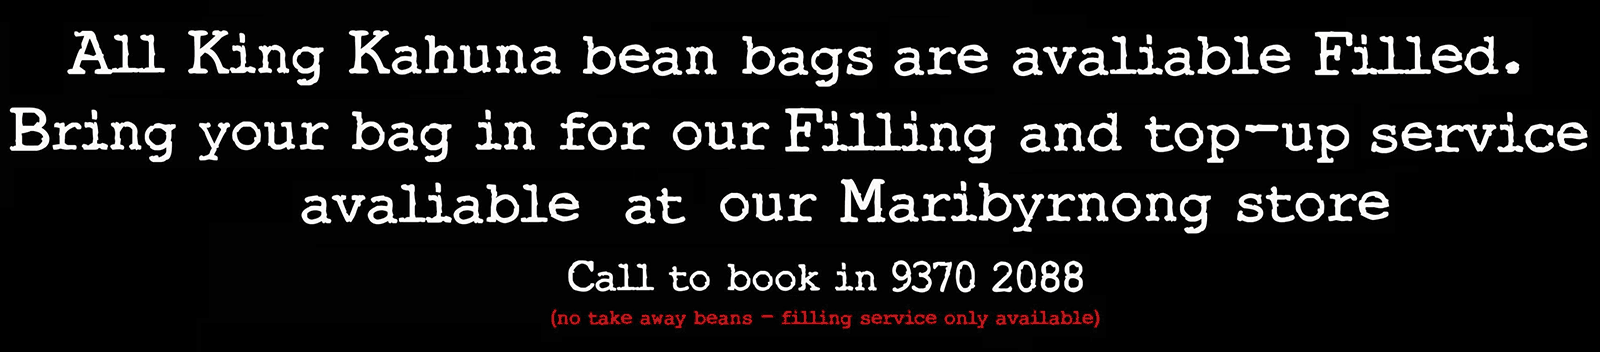 Bean bags are available filled. Bring in your bag for a filling and top-up service.